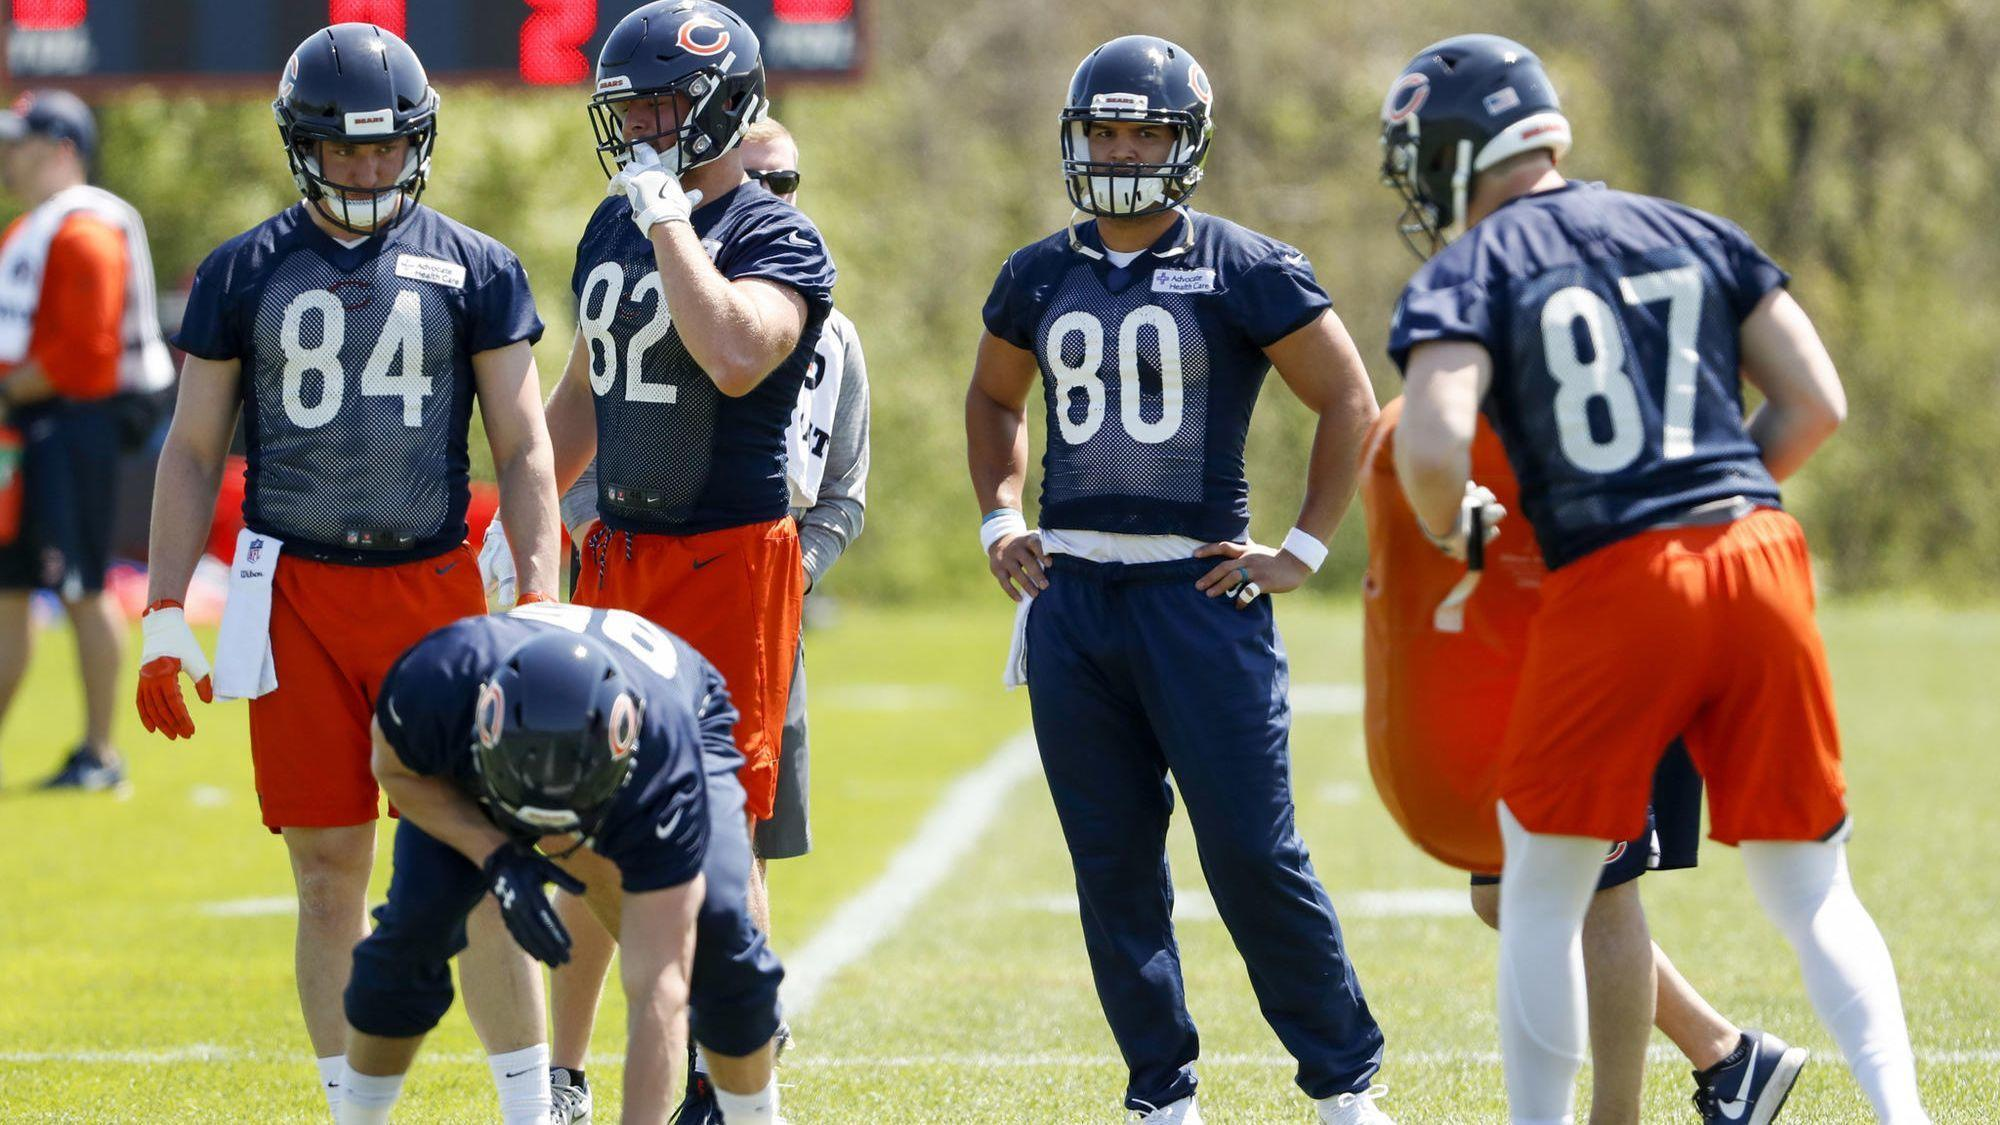 Ct-spt-bears-tight-ends-roster-strength-20180525